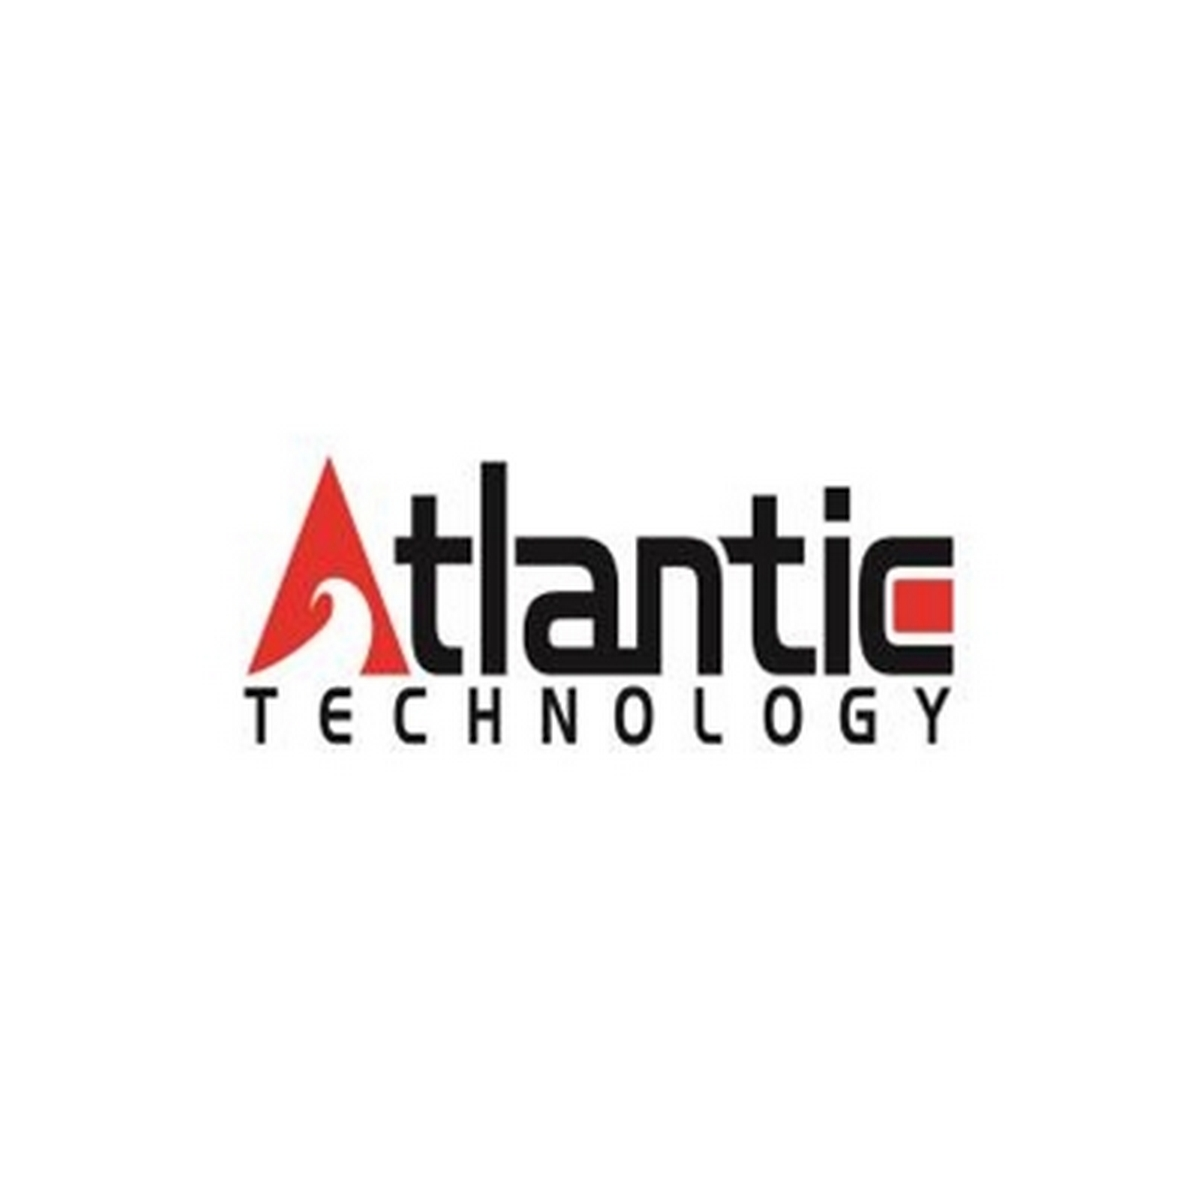 Atlantic Technology Stands for FS3200LCR